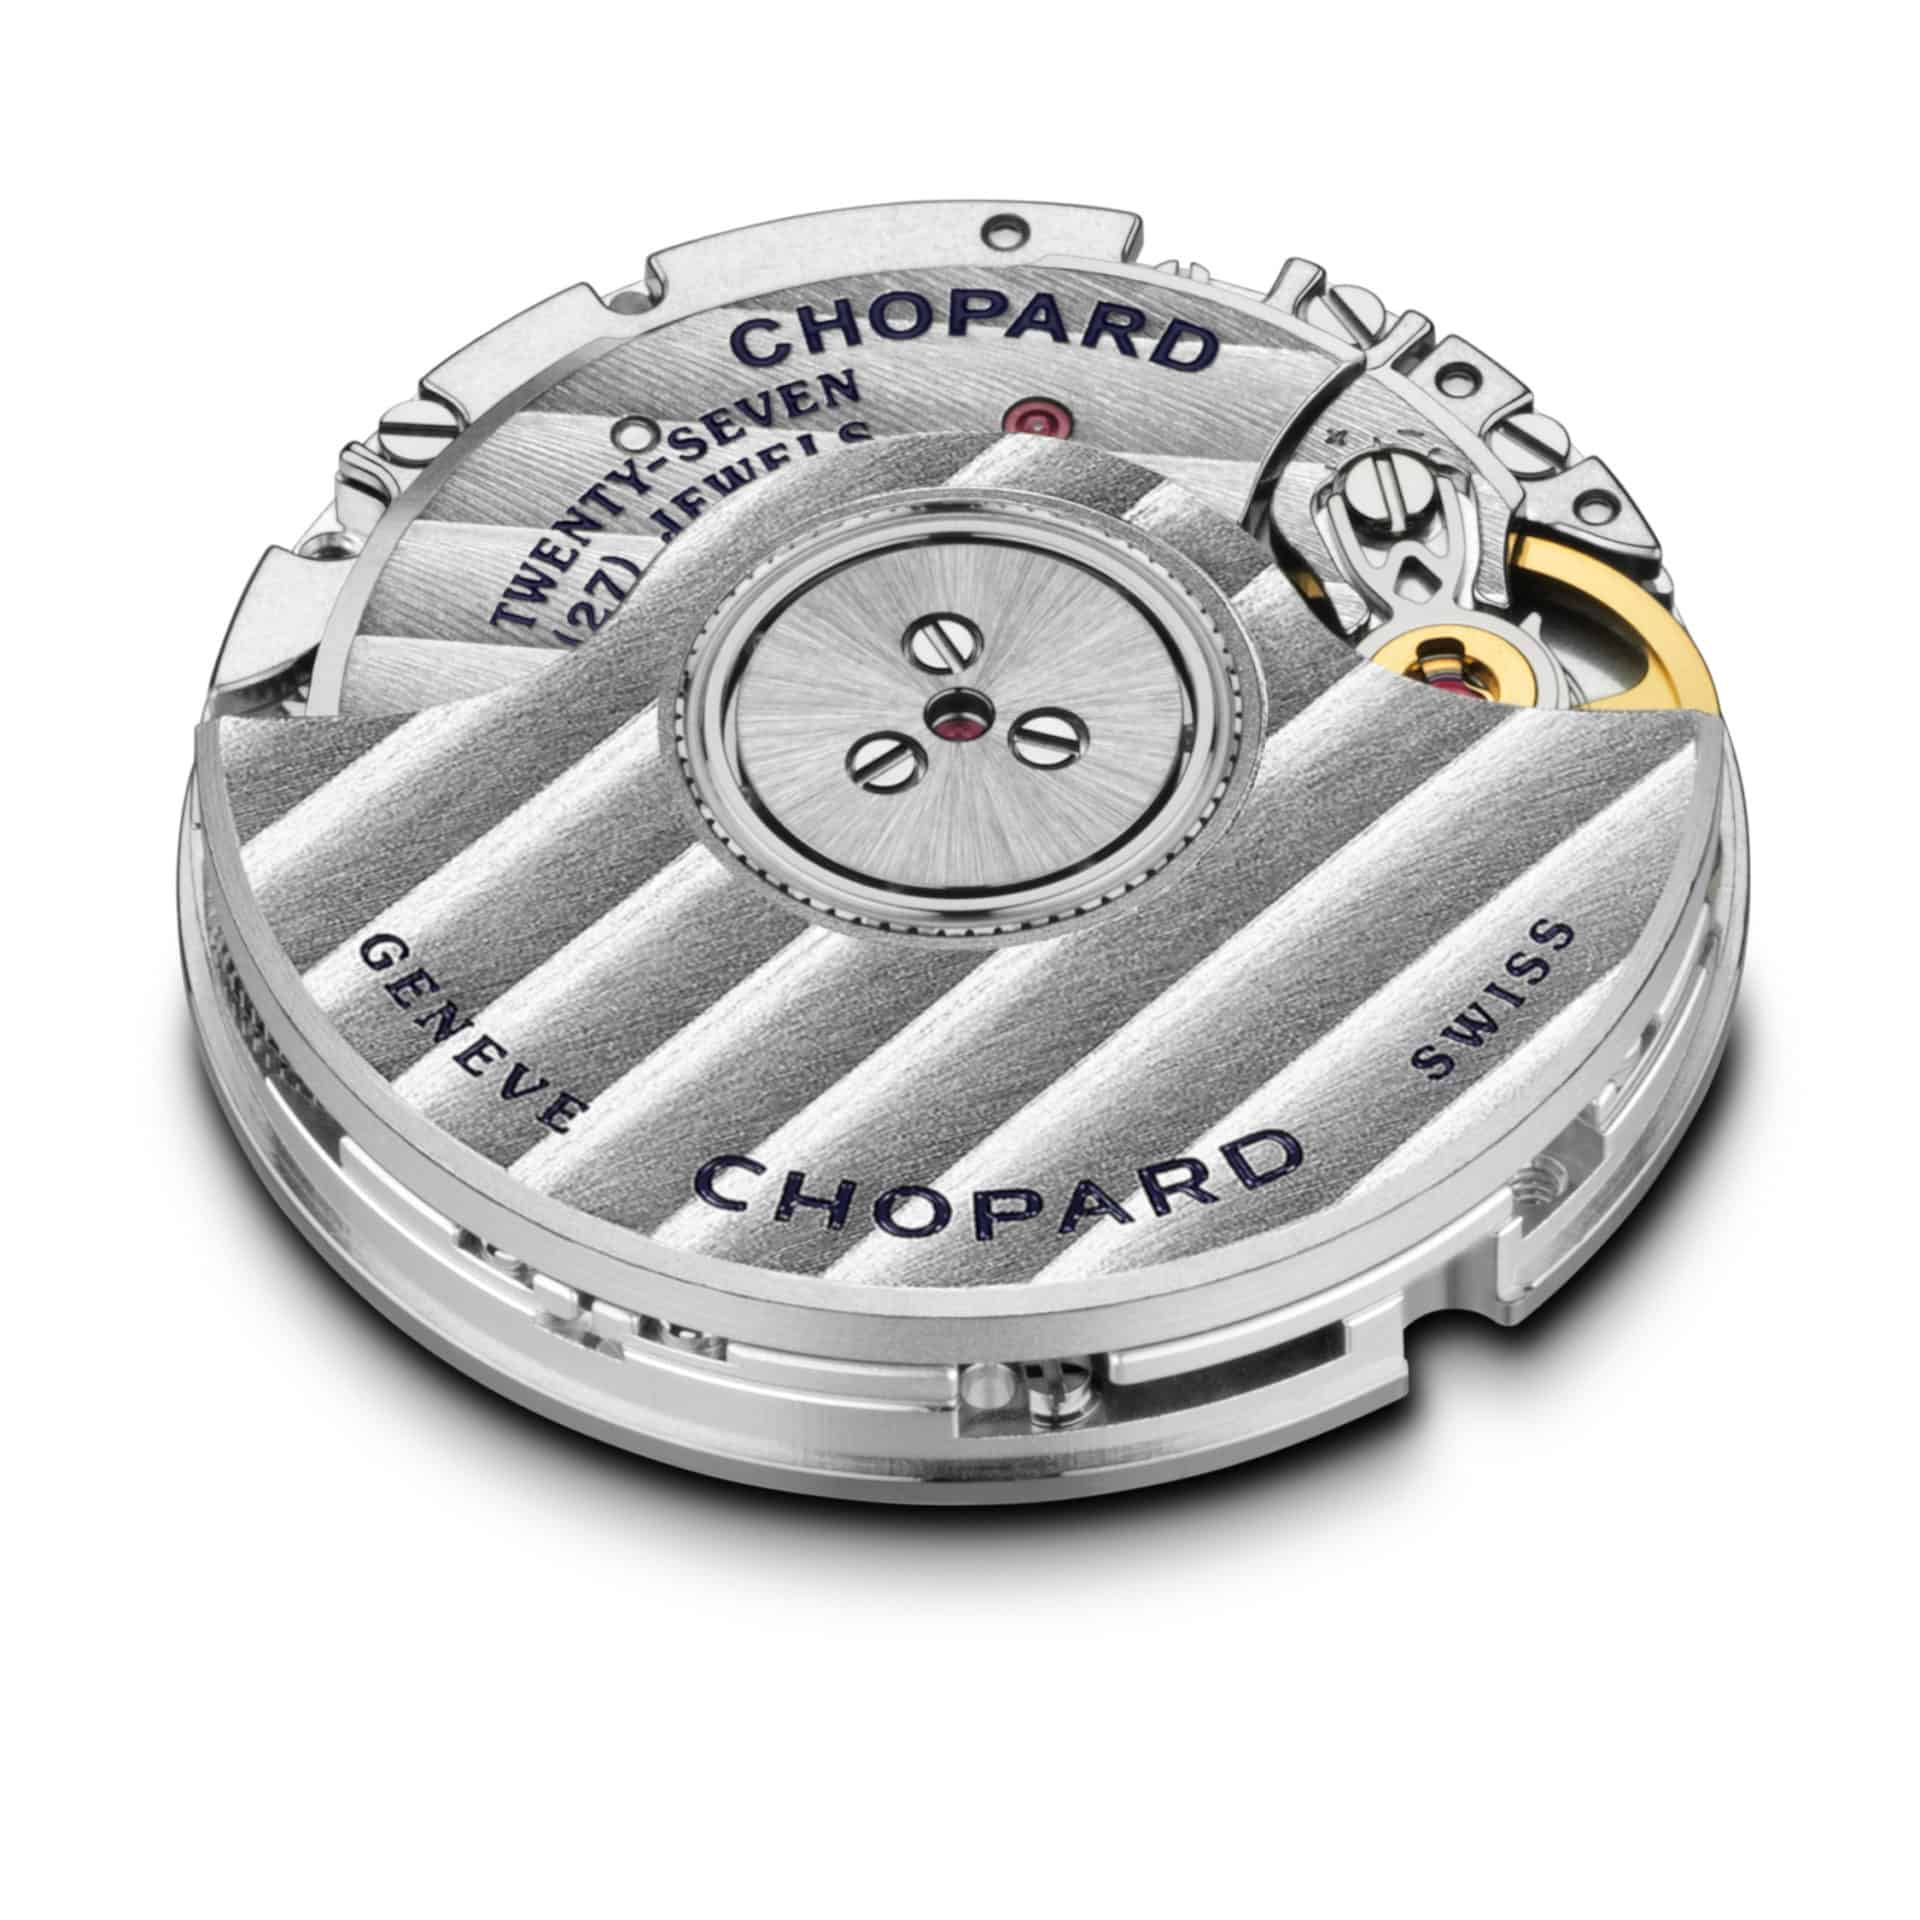 Chopard Movement 09.01 C